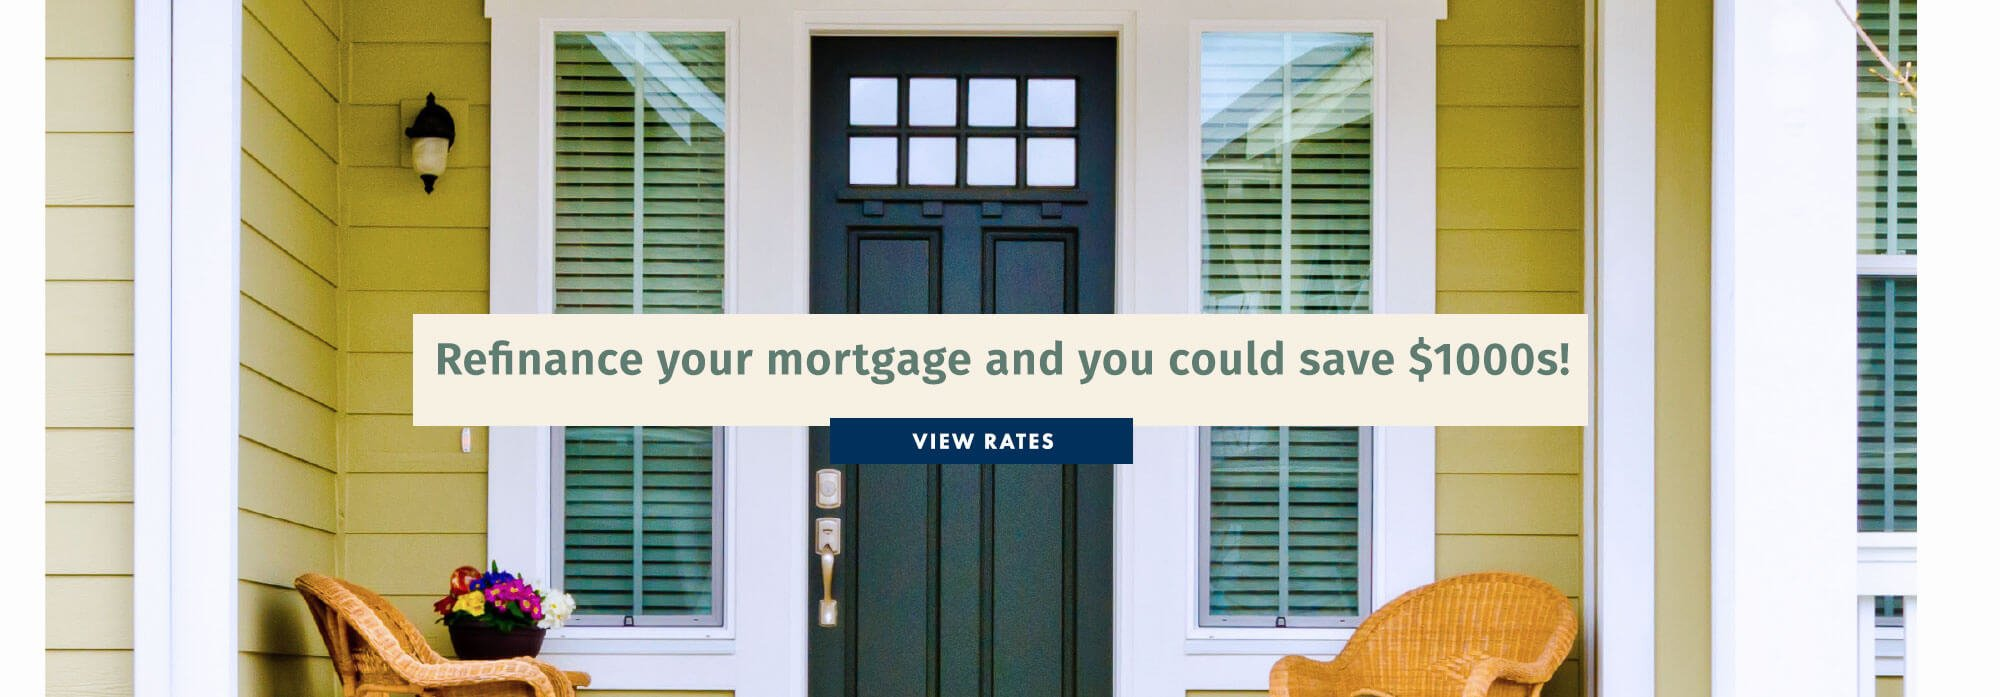 Refinance your mortgage and you could save $1000s! View Rates